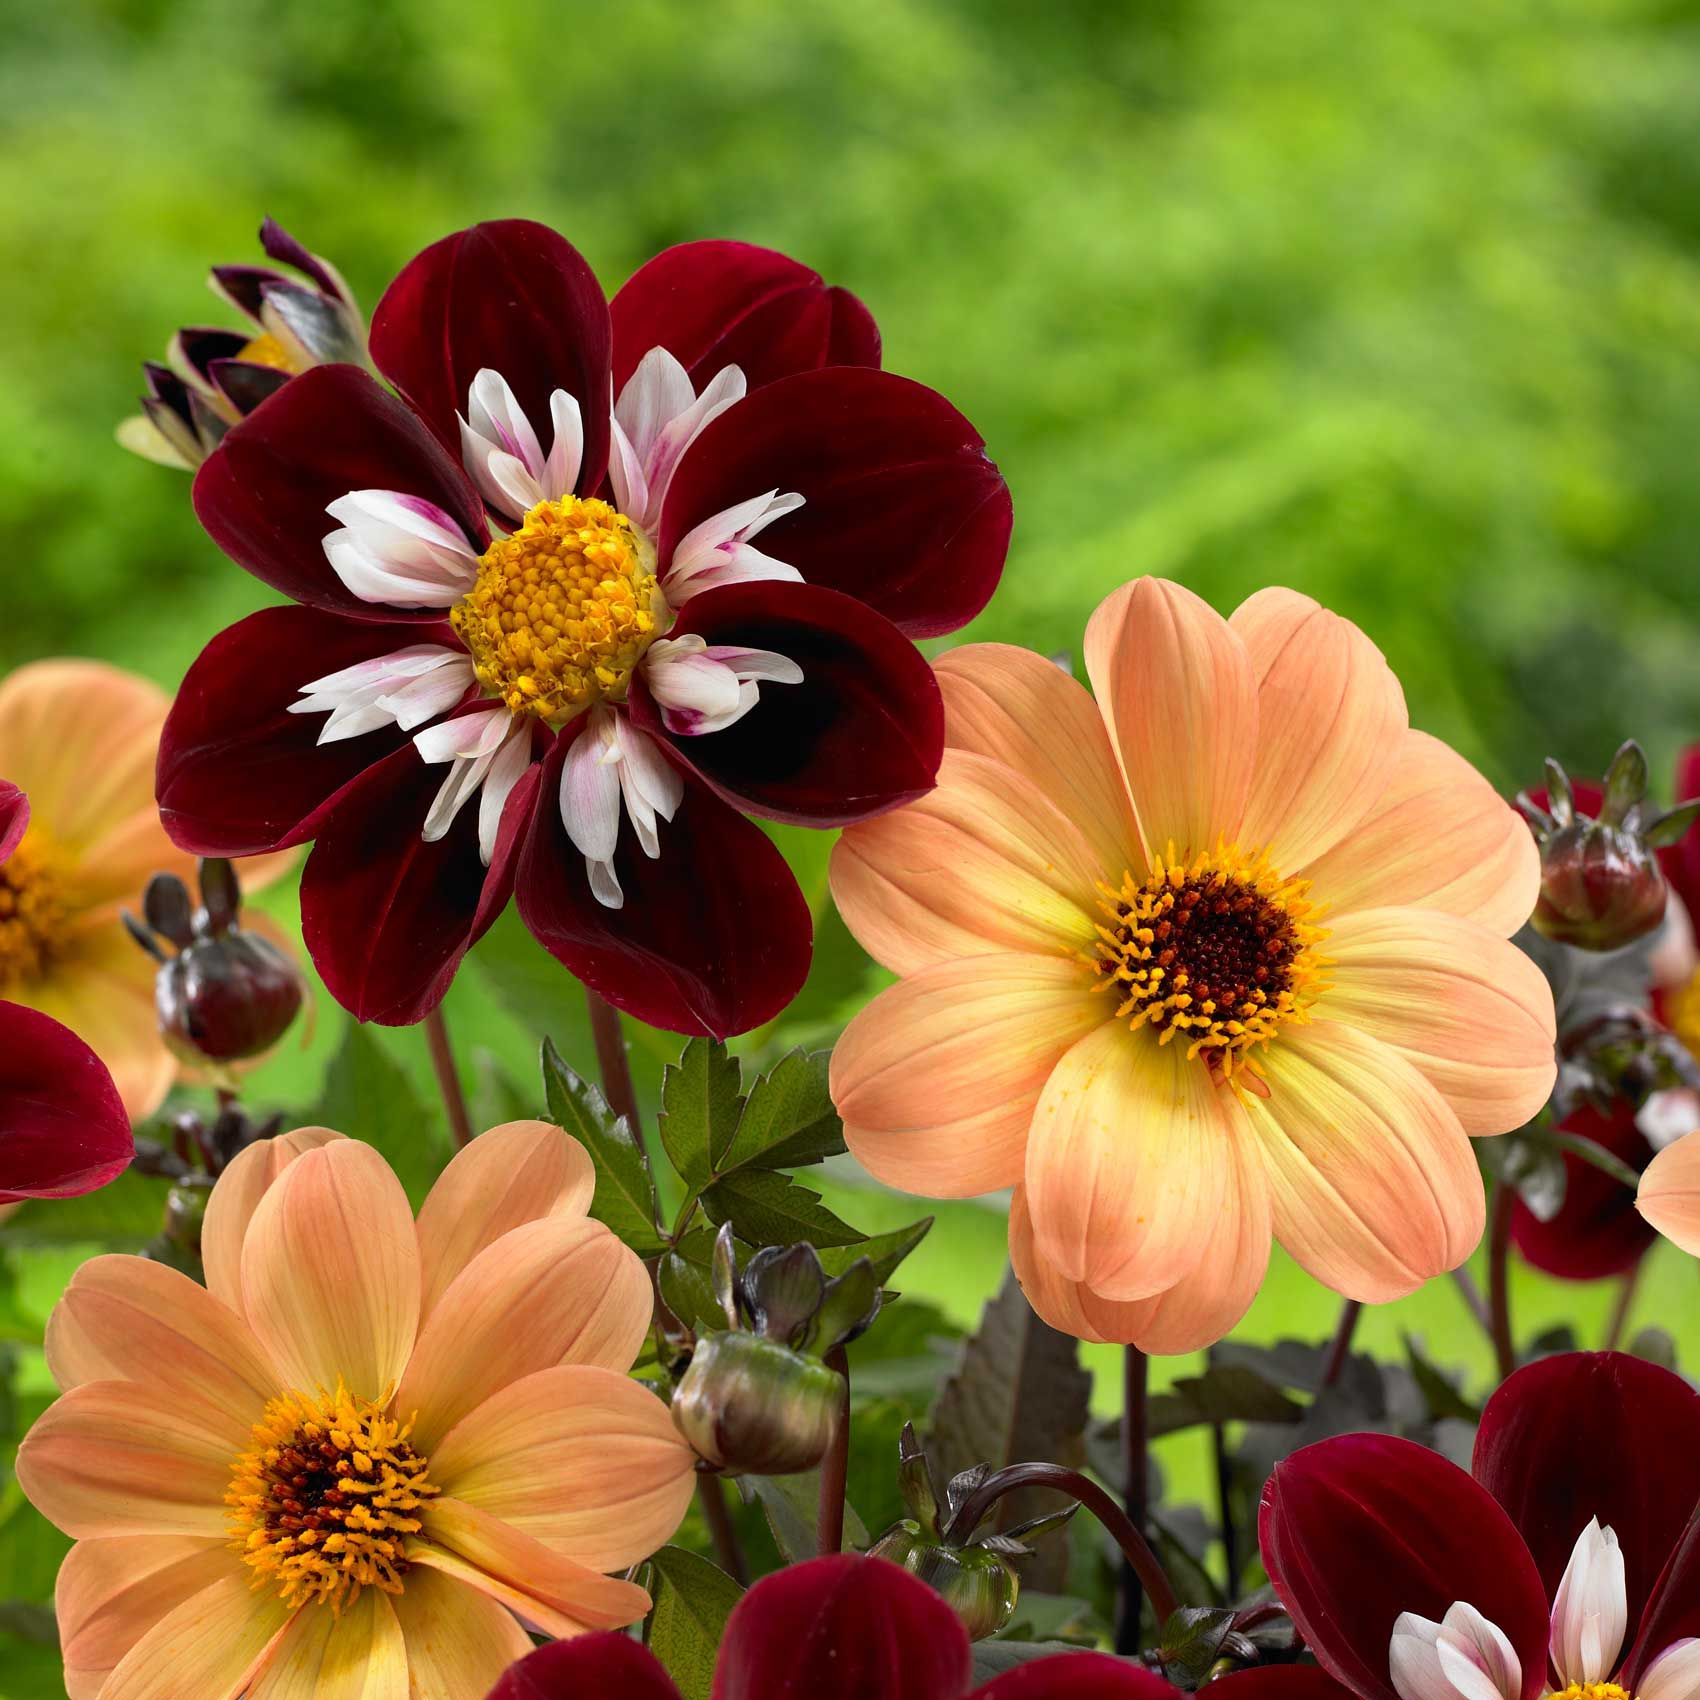 Know your dahlias flower styles and sizes pinterest dahlia mignon dahlias have daisy like flowers with a single row of petals around a contrasting center the compact plants often with dark colored foliage izmirmasajfo